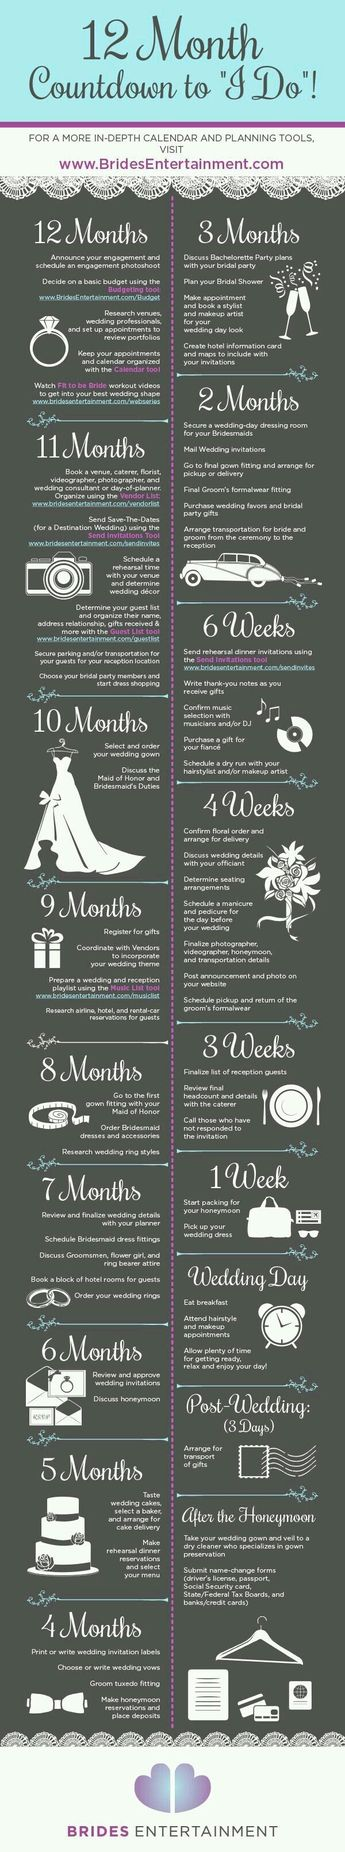 10 Useful Wedding Planning Infographics to Give Some Ideas and Tips